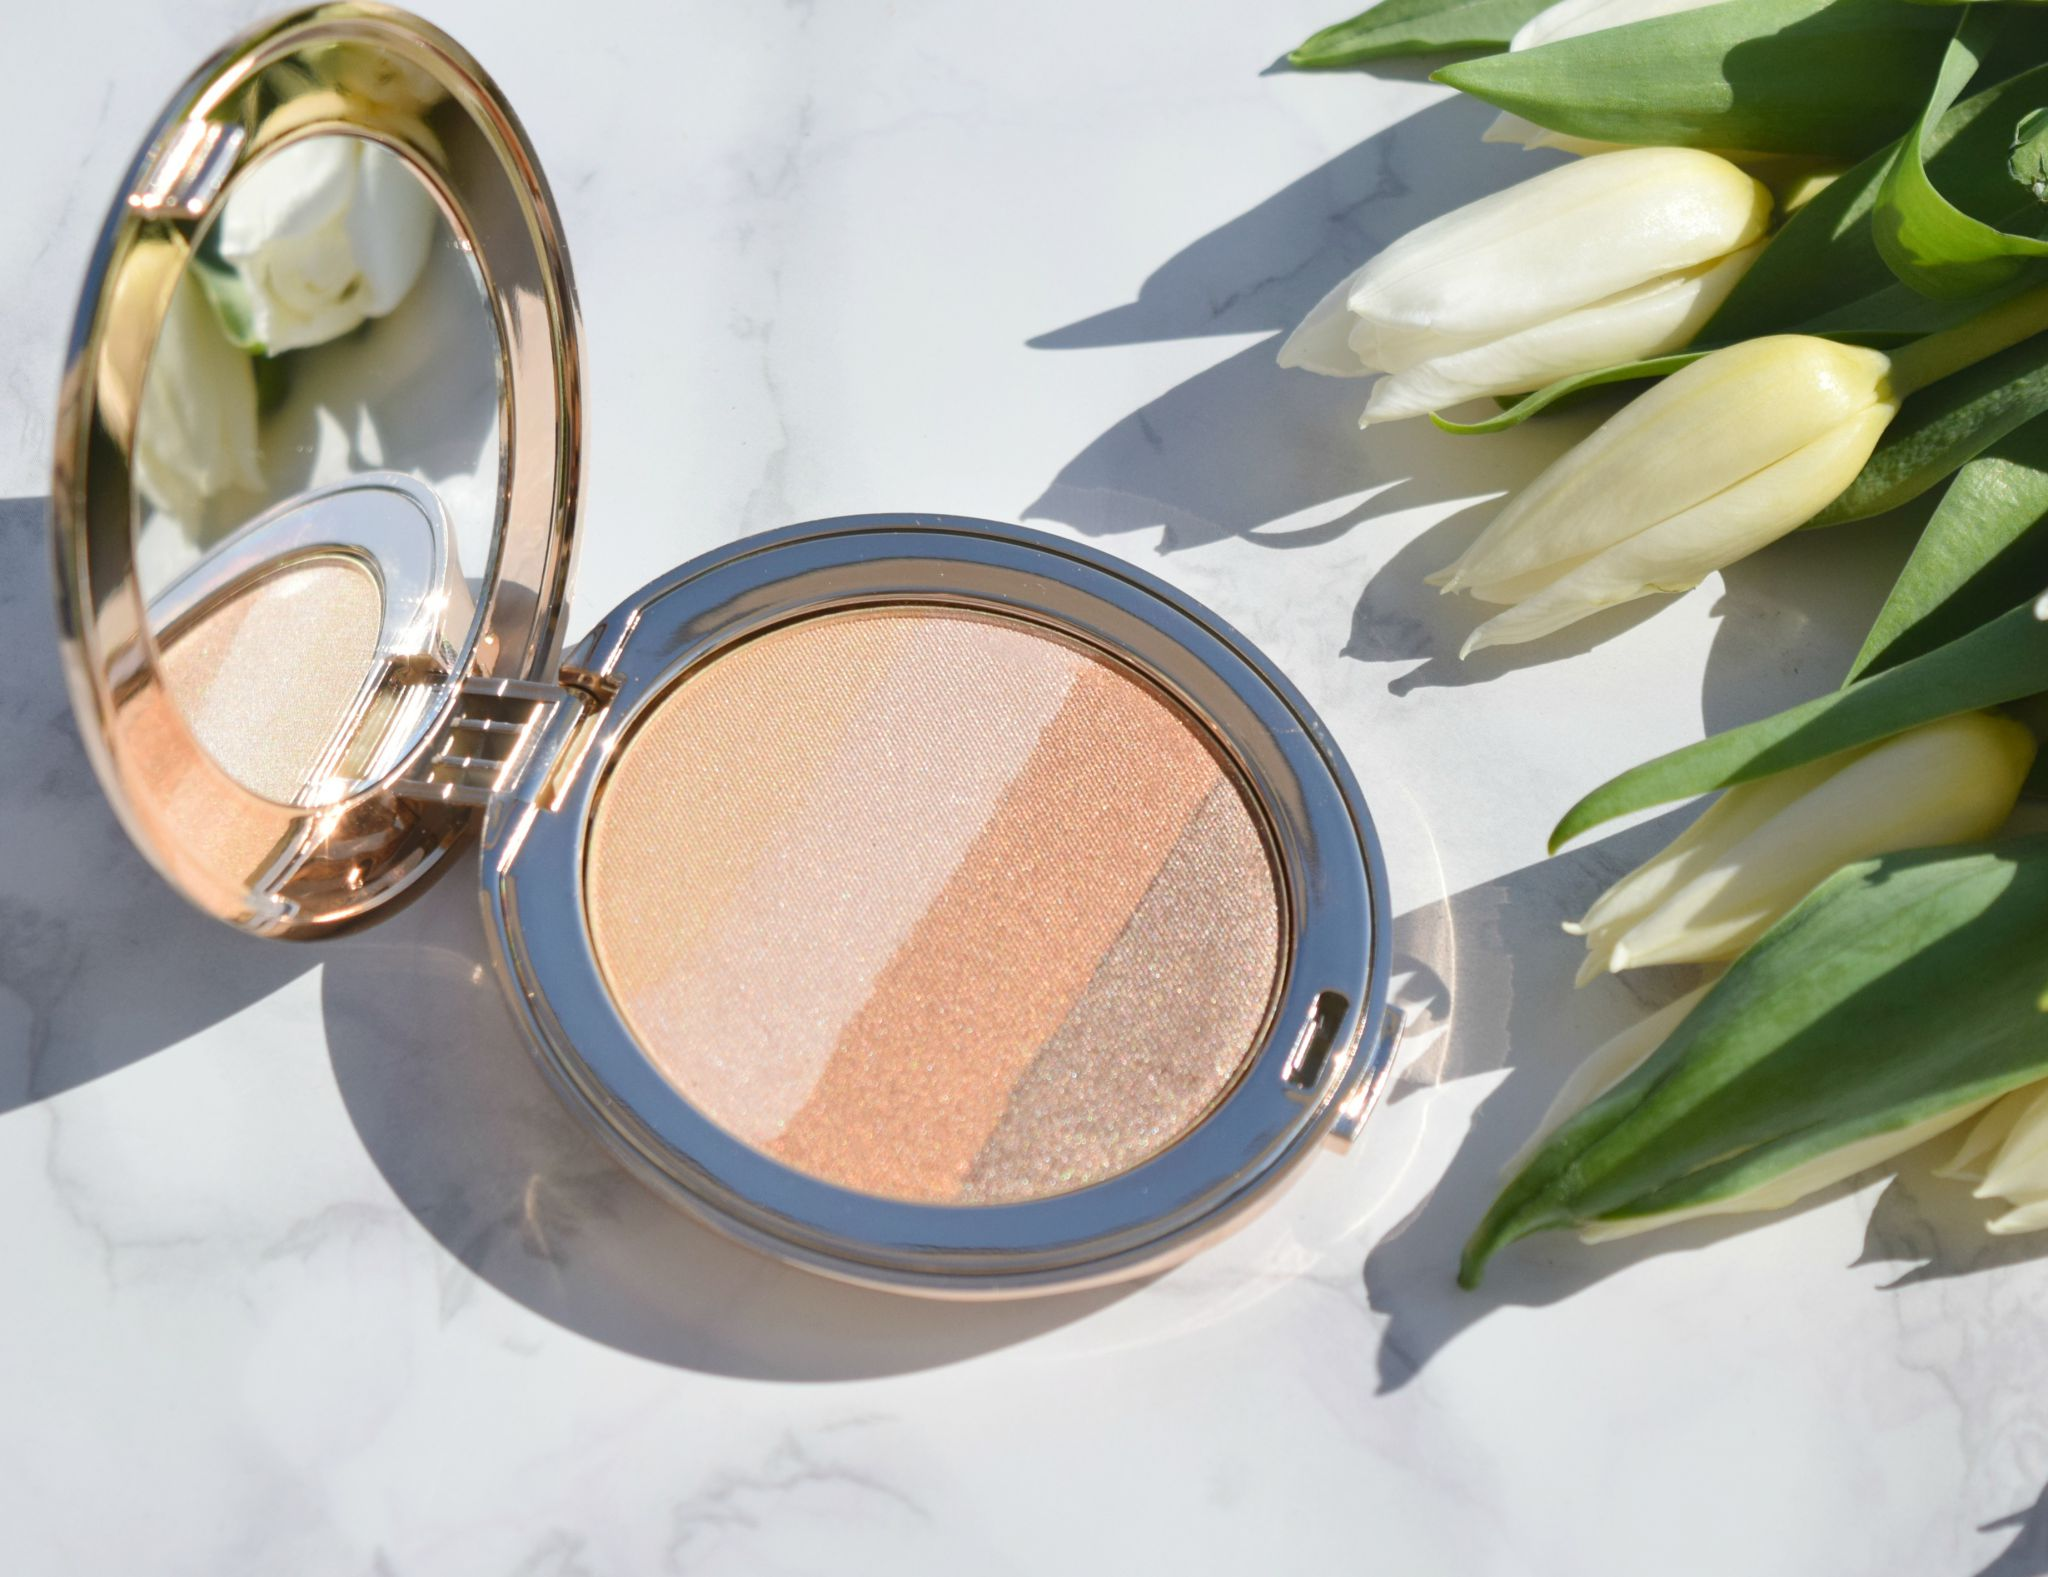 Jane Iredale Moonglow Quad Bronzer 2